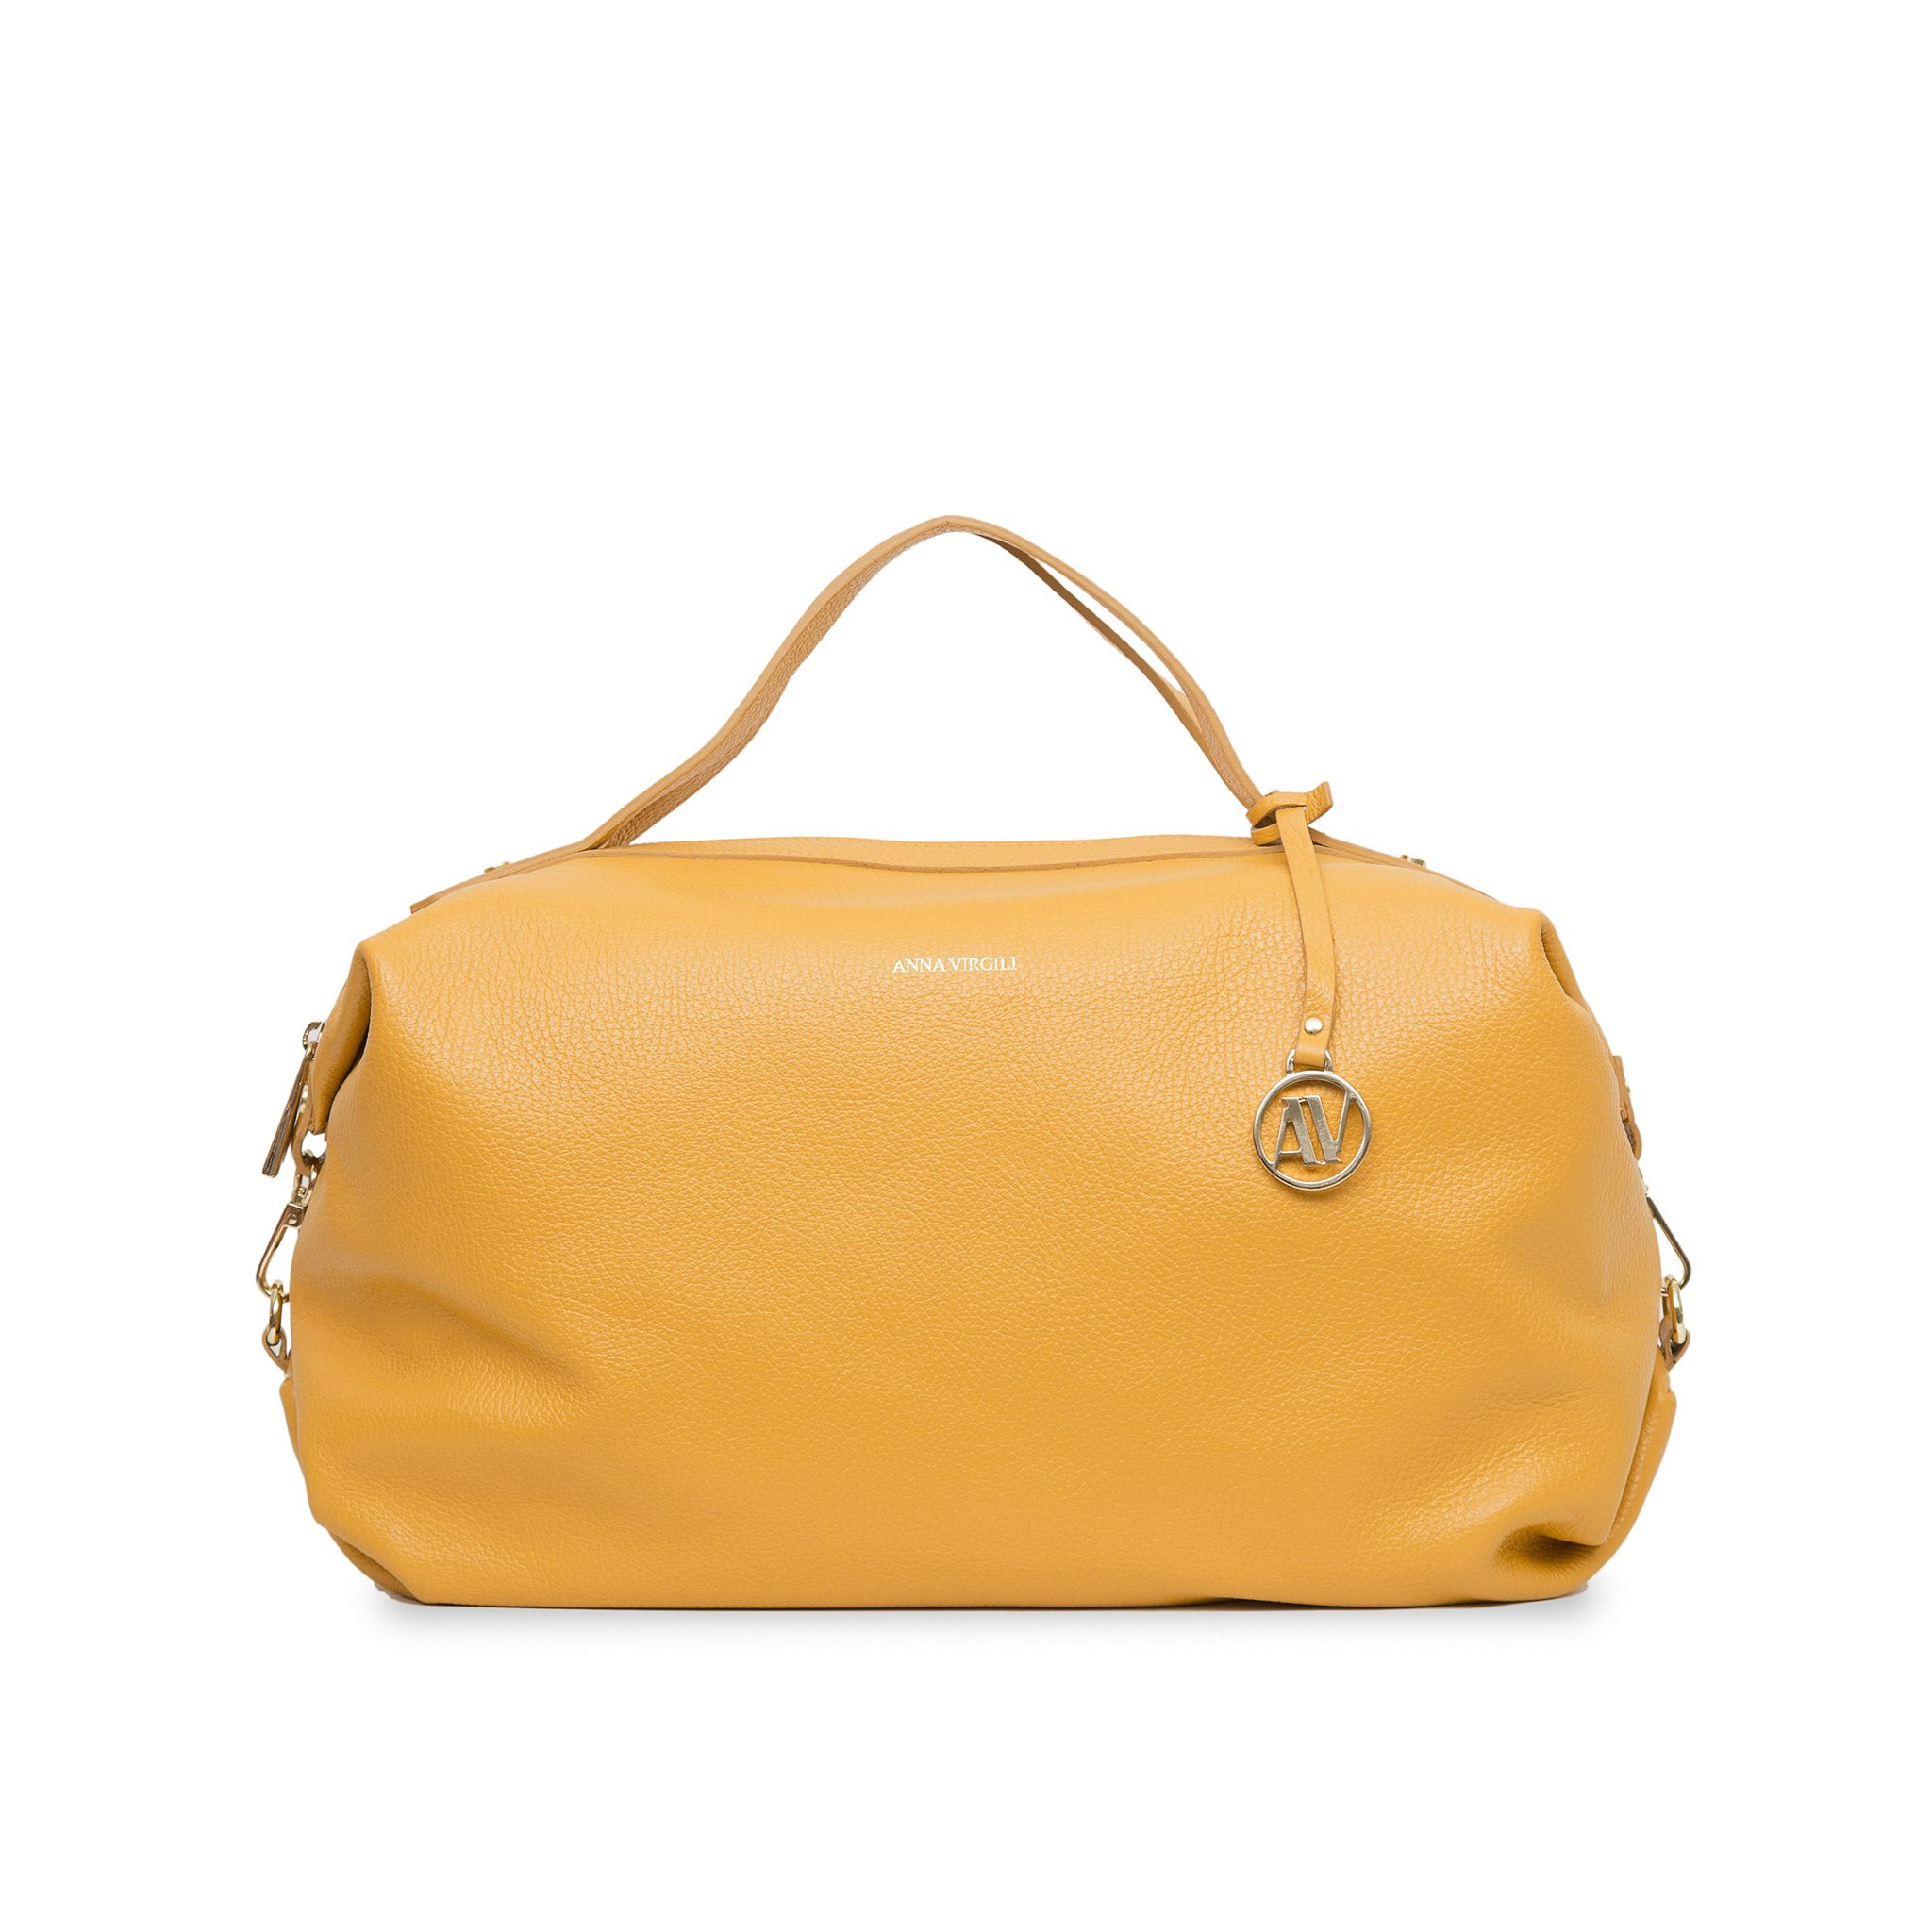 Giada Rimini Leather Handbag - Ochre